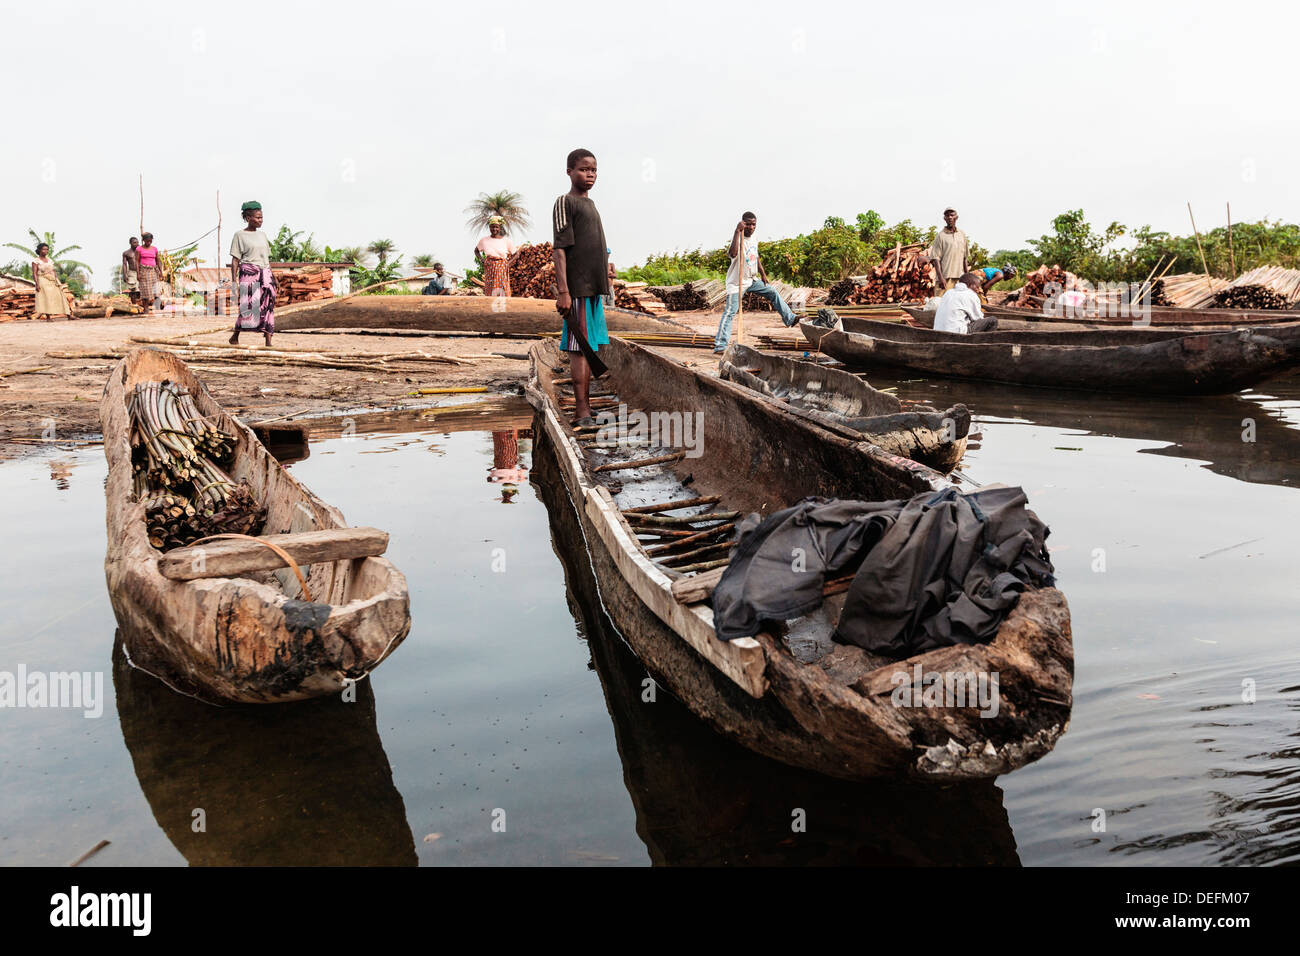 Africa, Liberia, Monrovia. People gathered by traditional pirogue boats on the Du River. - Stock Image